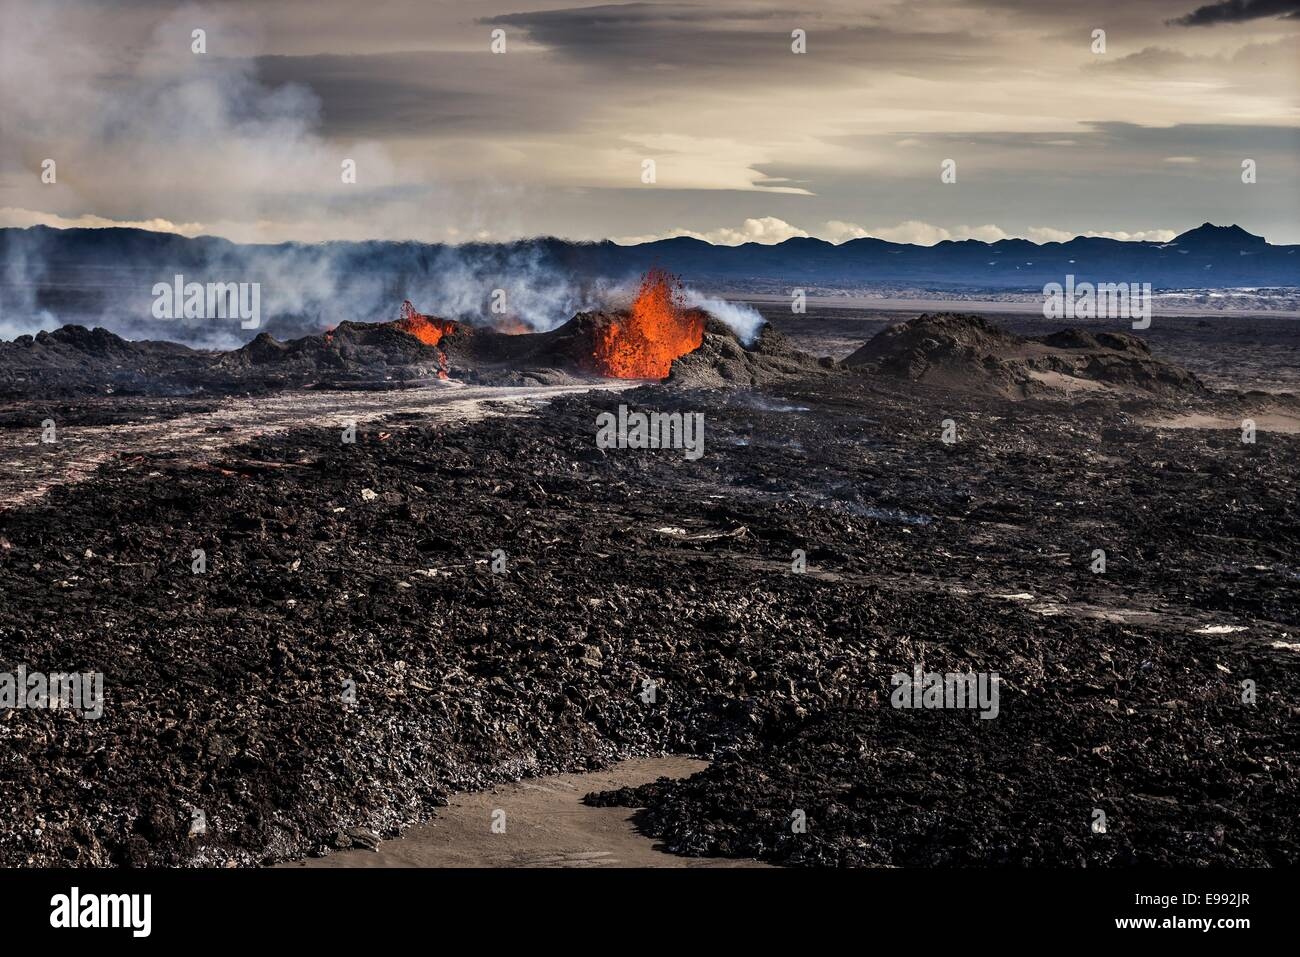 Lava and plumes from the Holuhraun Fissure by the Bardarbunga Volcano, Iceland. Stock Photo